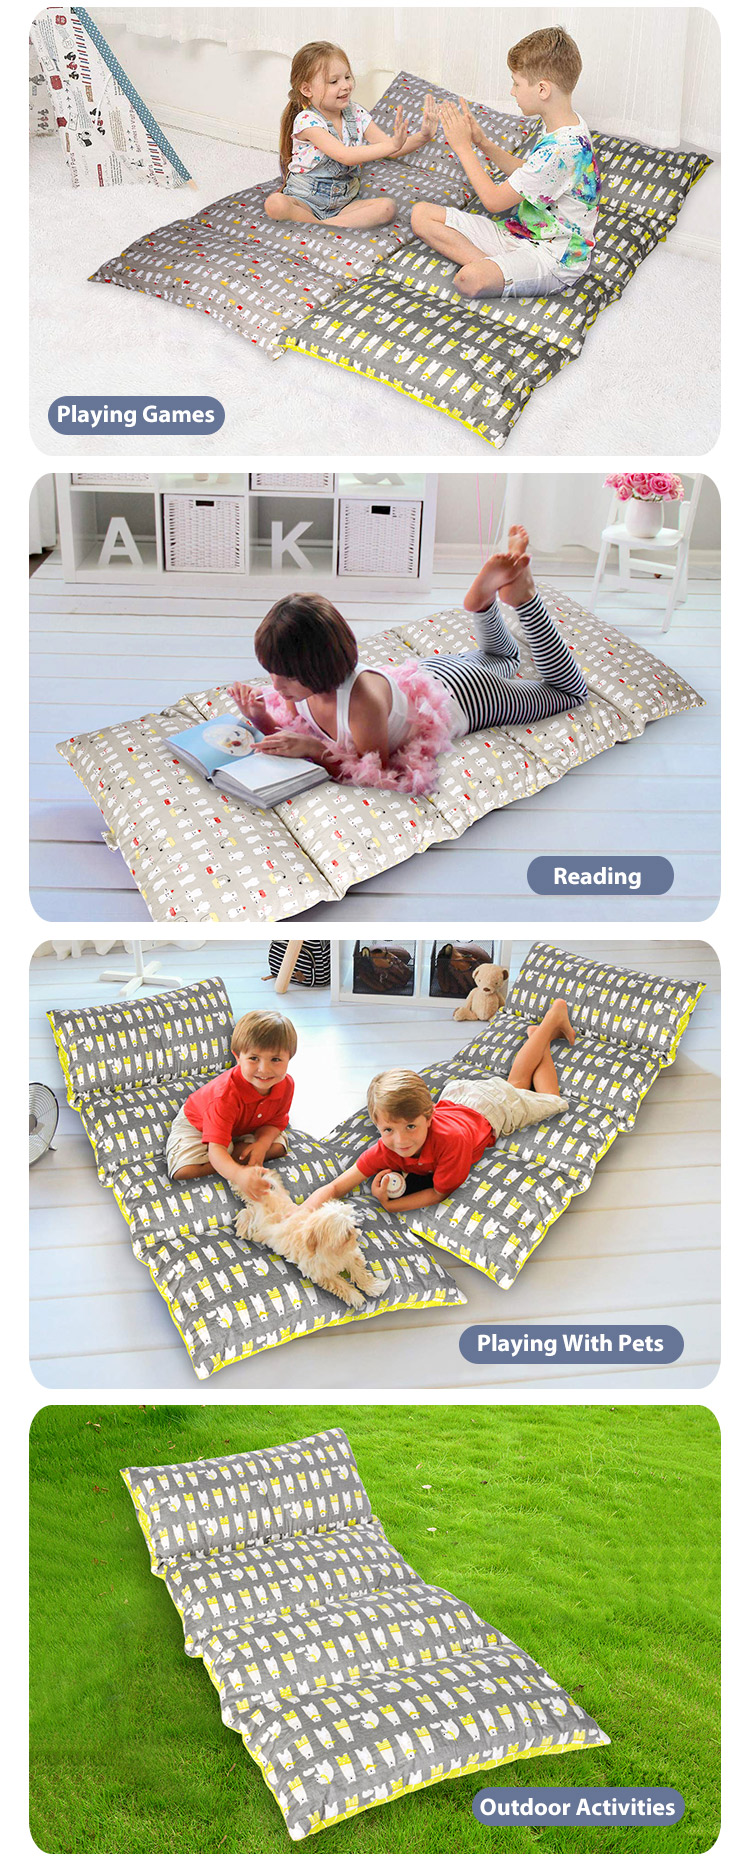 Shinnwa Kid S Floor Pillow Bed Mattress Portable Toddler Children For Reading Playing Buy Pillow Bed Toddler Children Pillow Bed Floor Pillow Bed Product On Alibaba Com